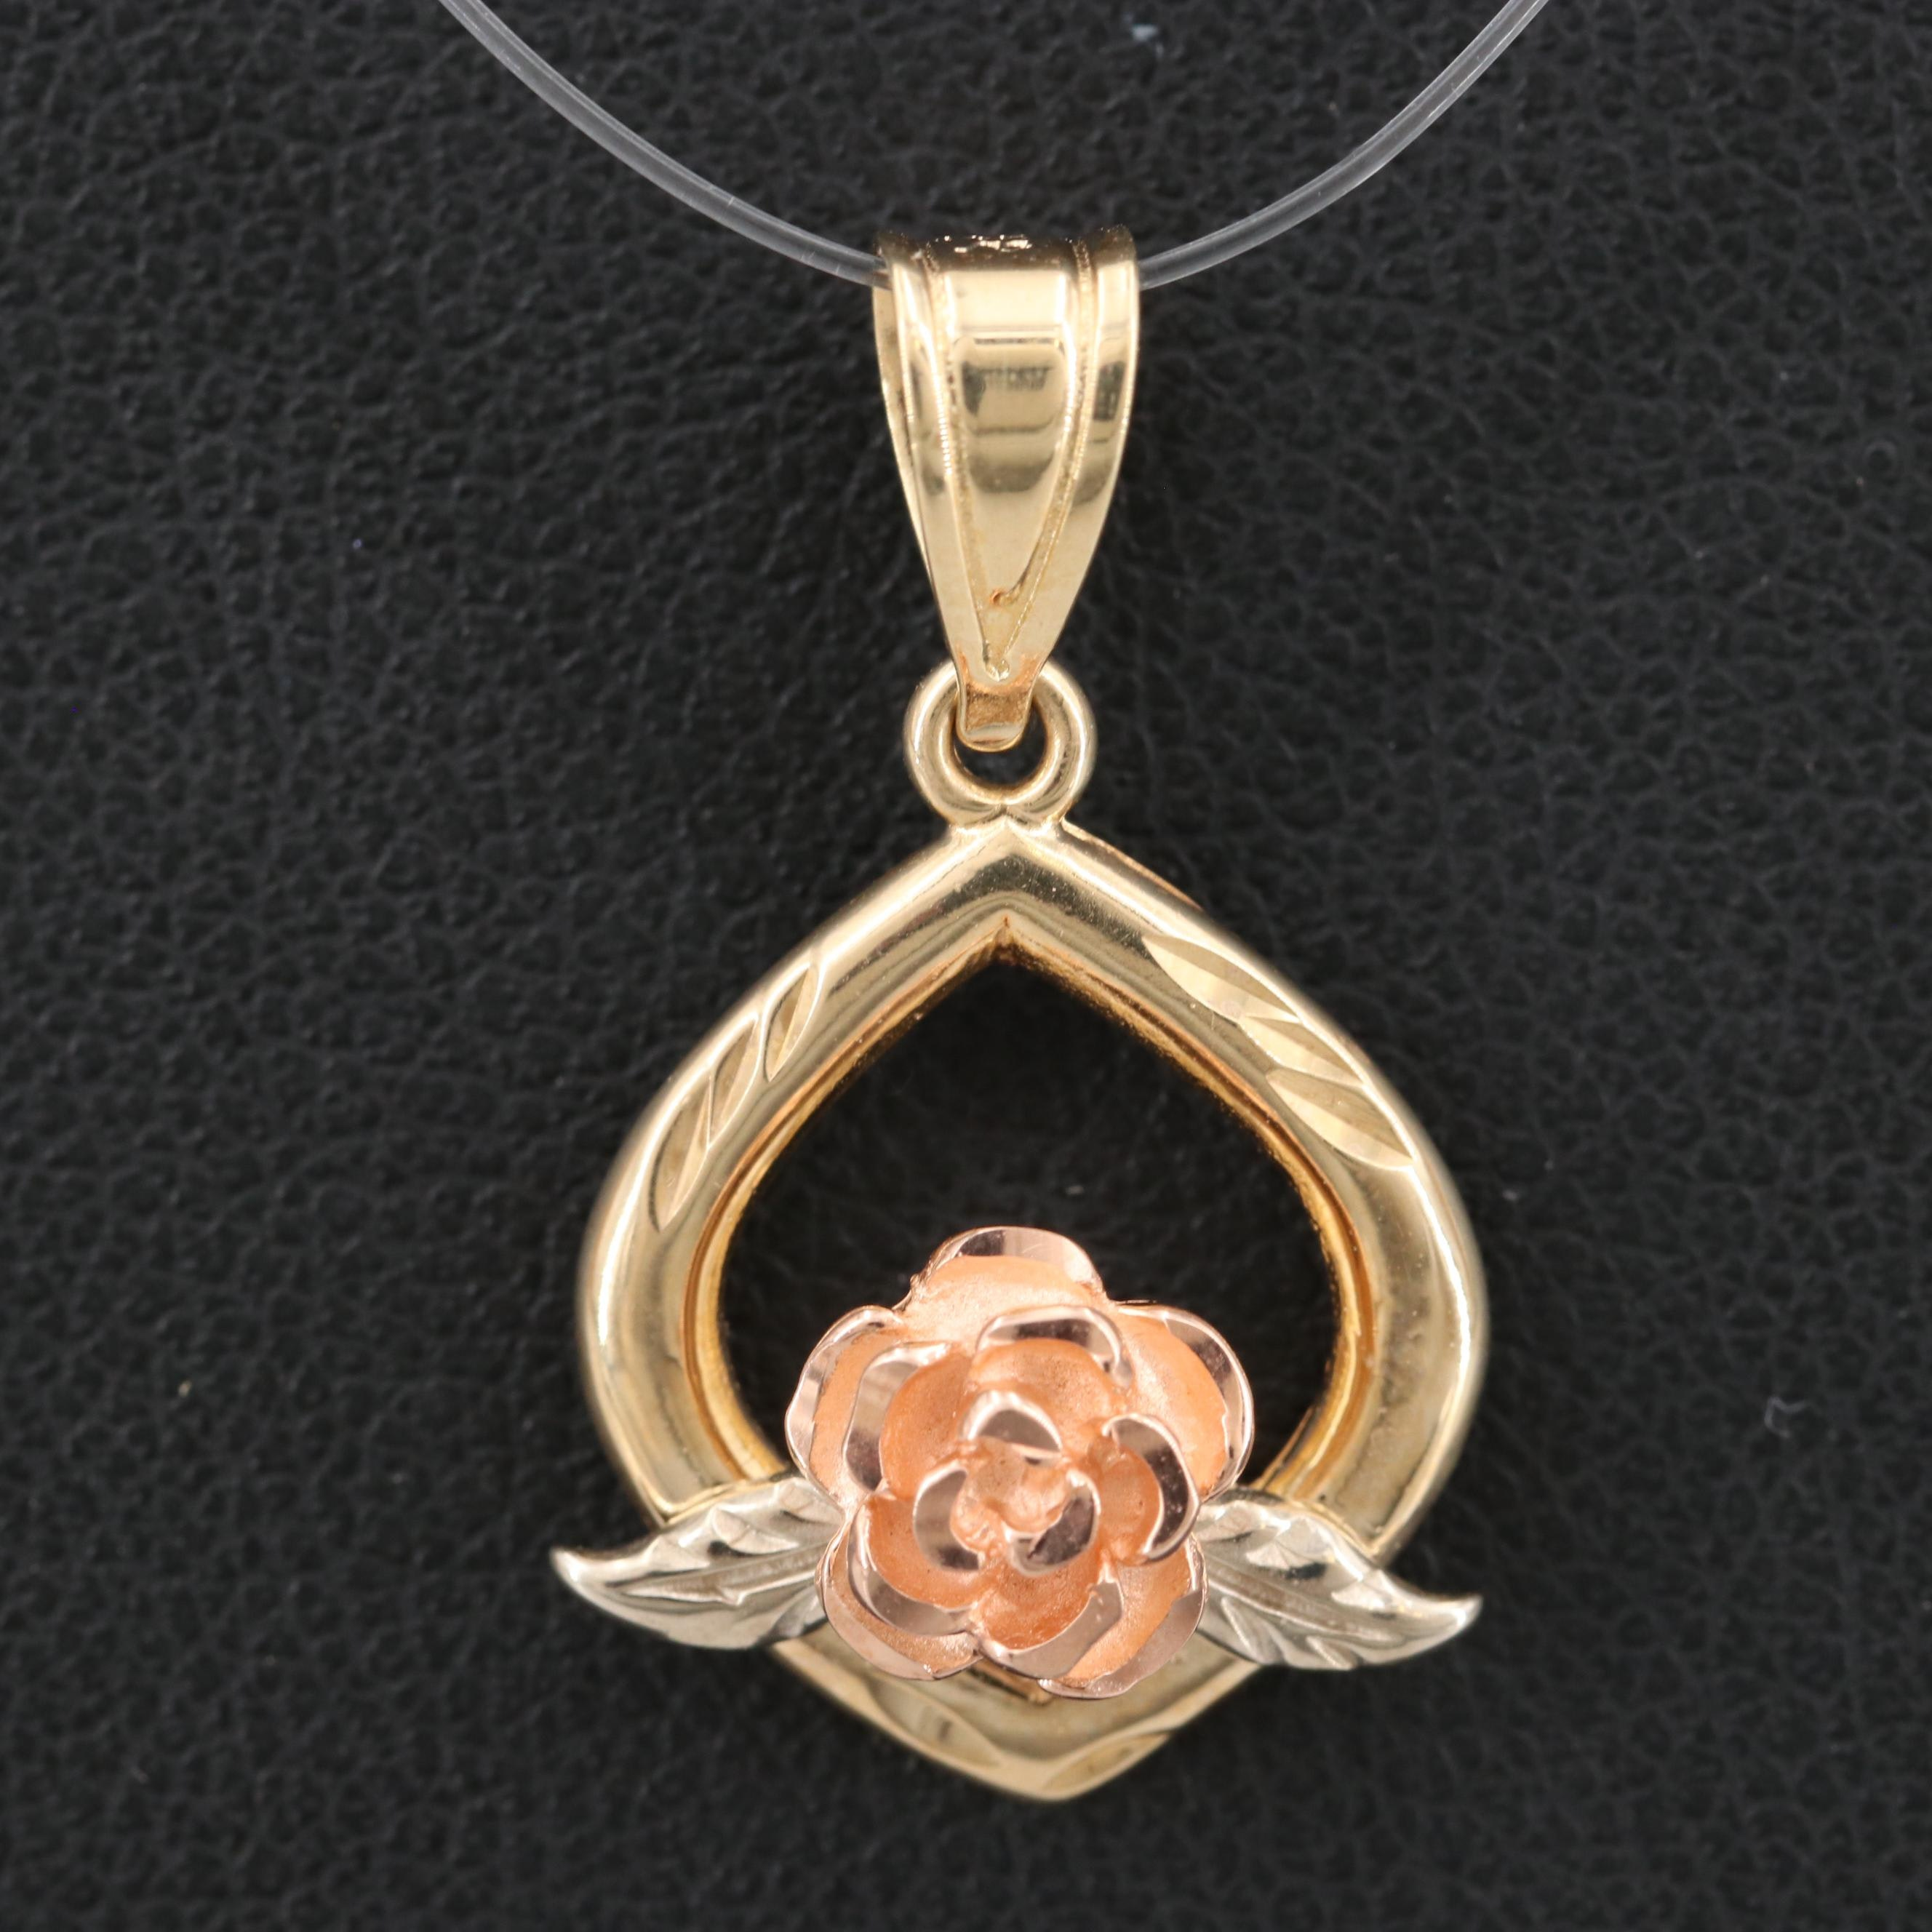 14K Yellow Gold Rose Pendant with Rose and White Gold Accents